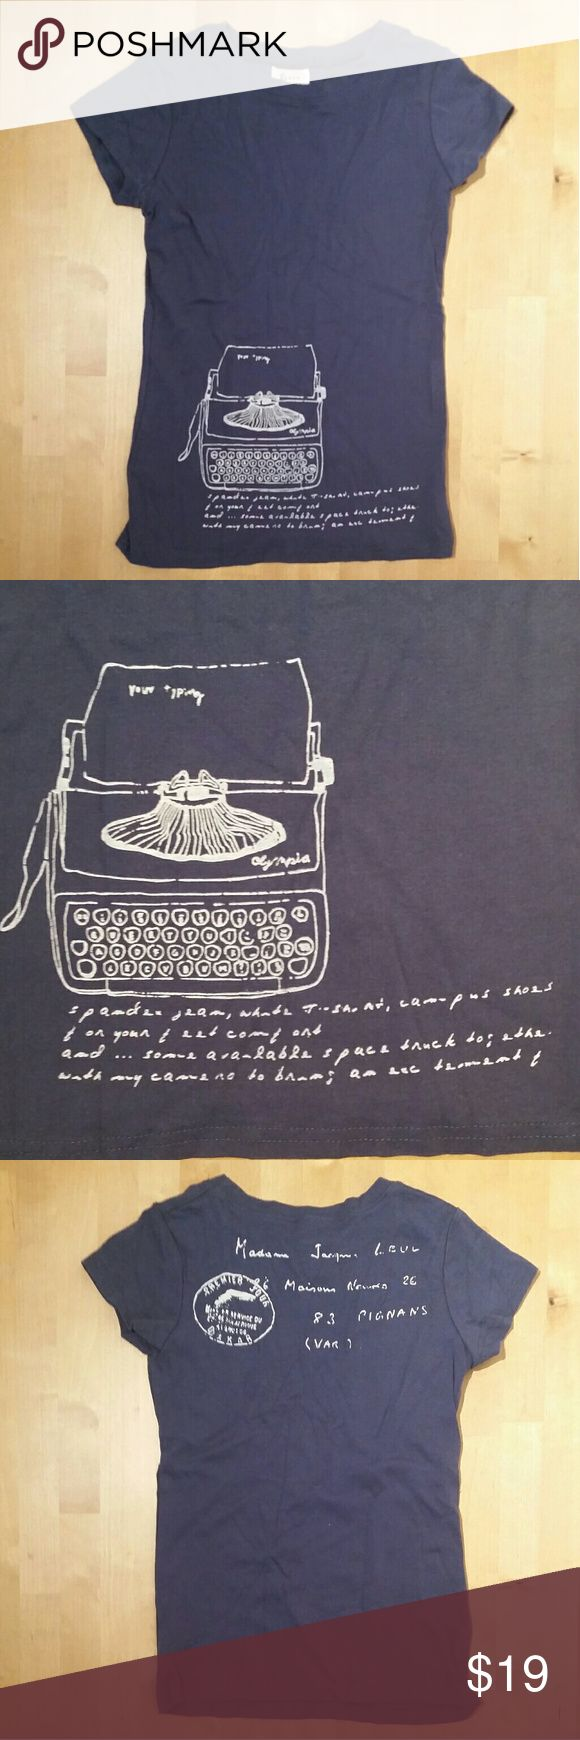 Typewriter tee from Korea Unique women's tee from Korea. Dark blue with white screen print of typewriter sketch and handwritting brand is Design by Korea. Fitted style. EUC  14.5 inches flat across chest 22 inches length shoulder to hem Tops Tees - Short Sleeve